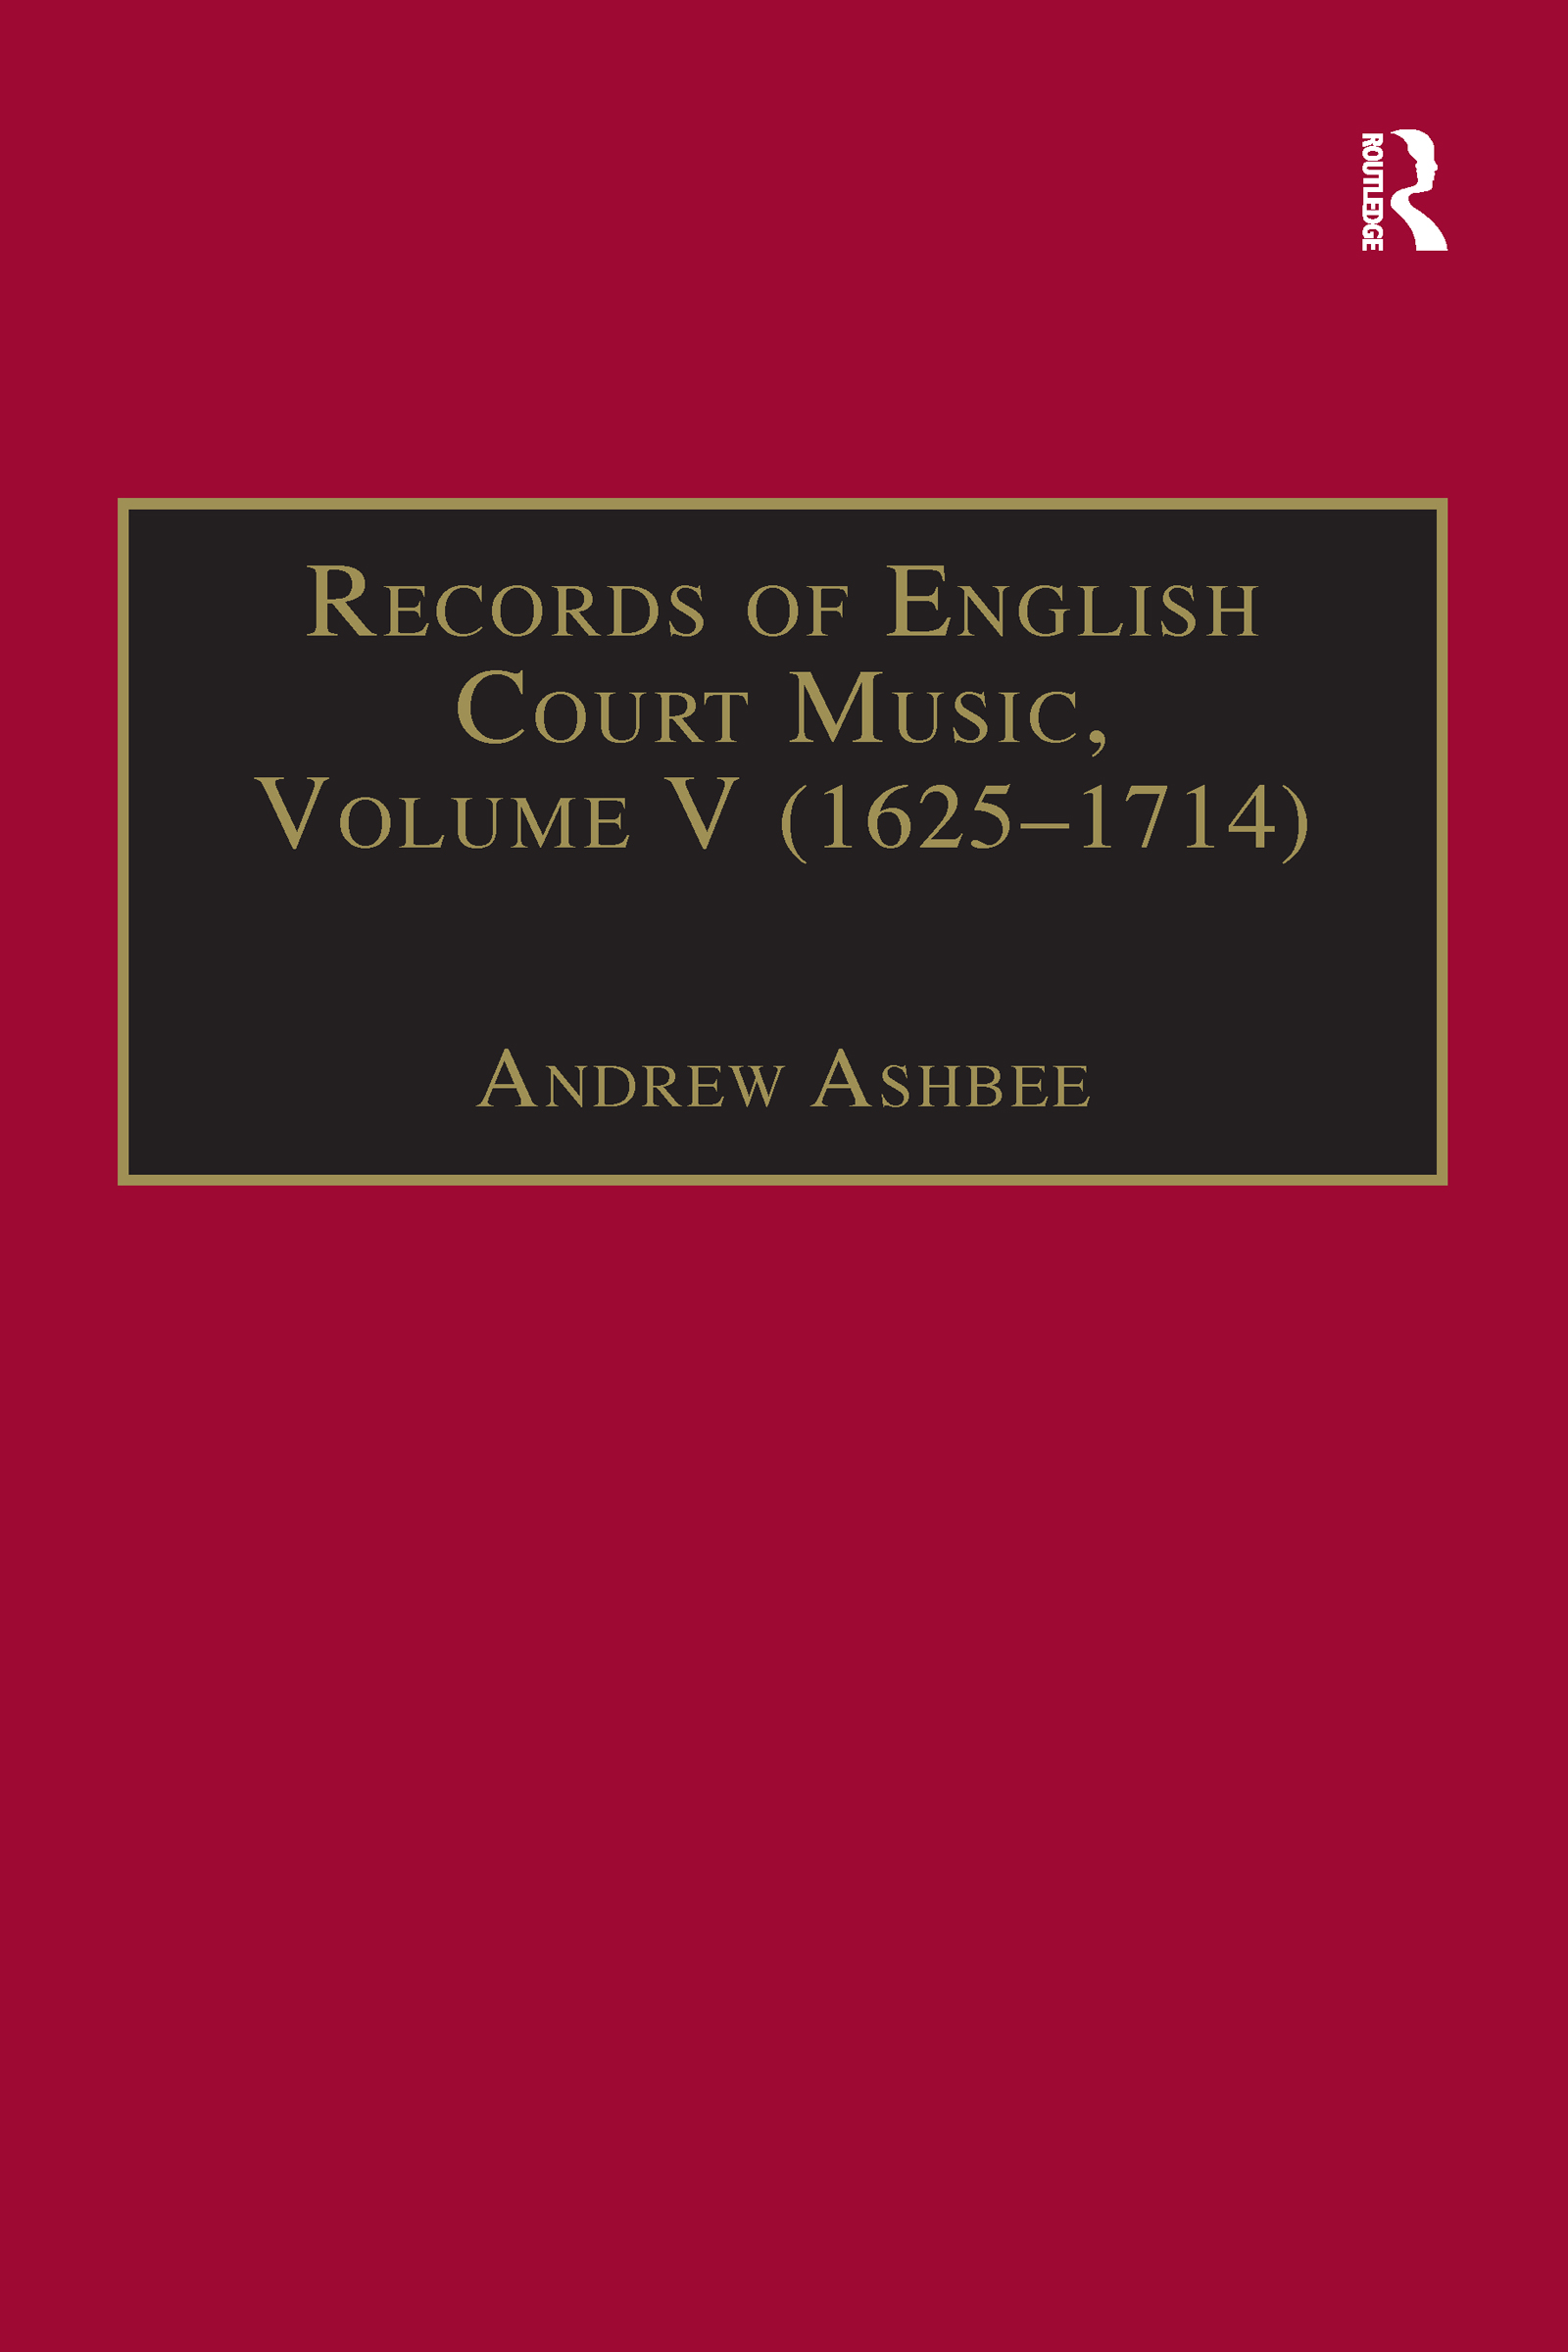 Records of English Court Music: Volume V: 1625-1714 book cover